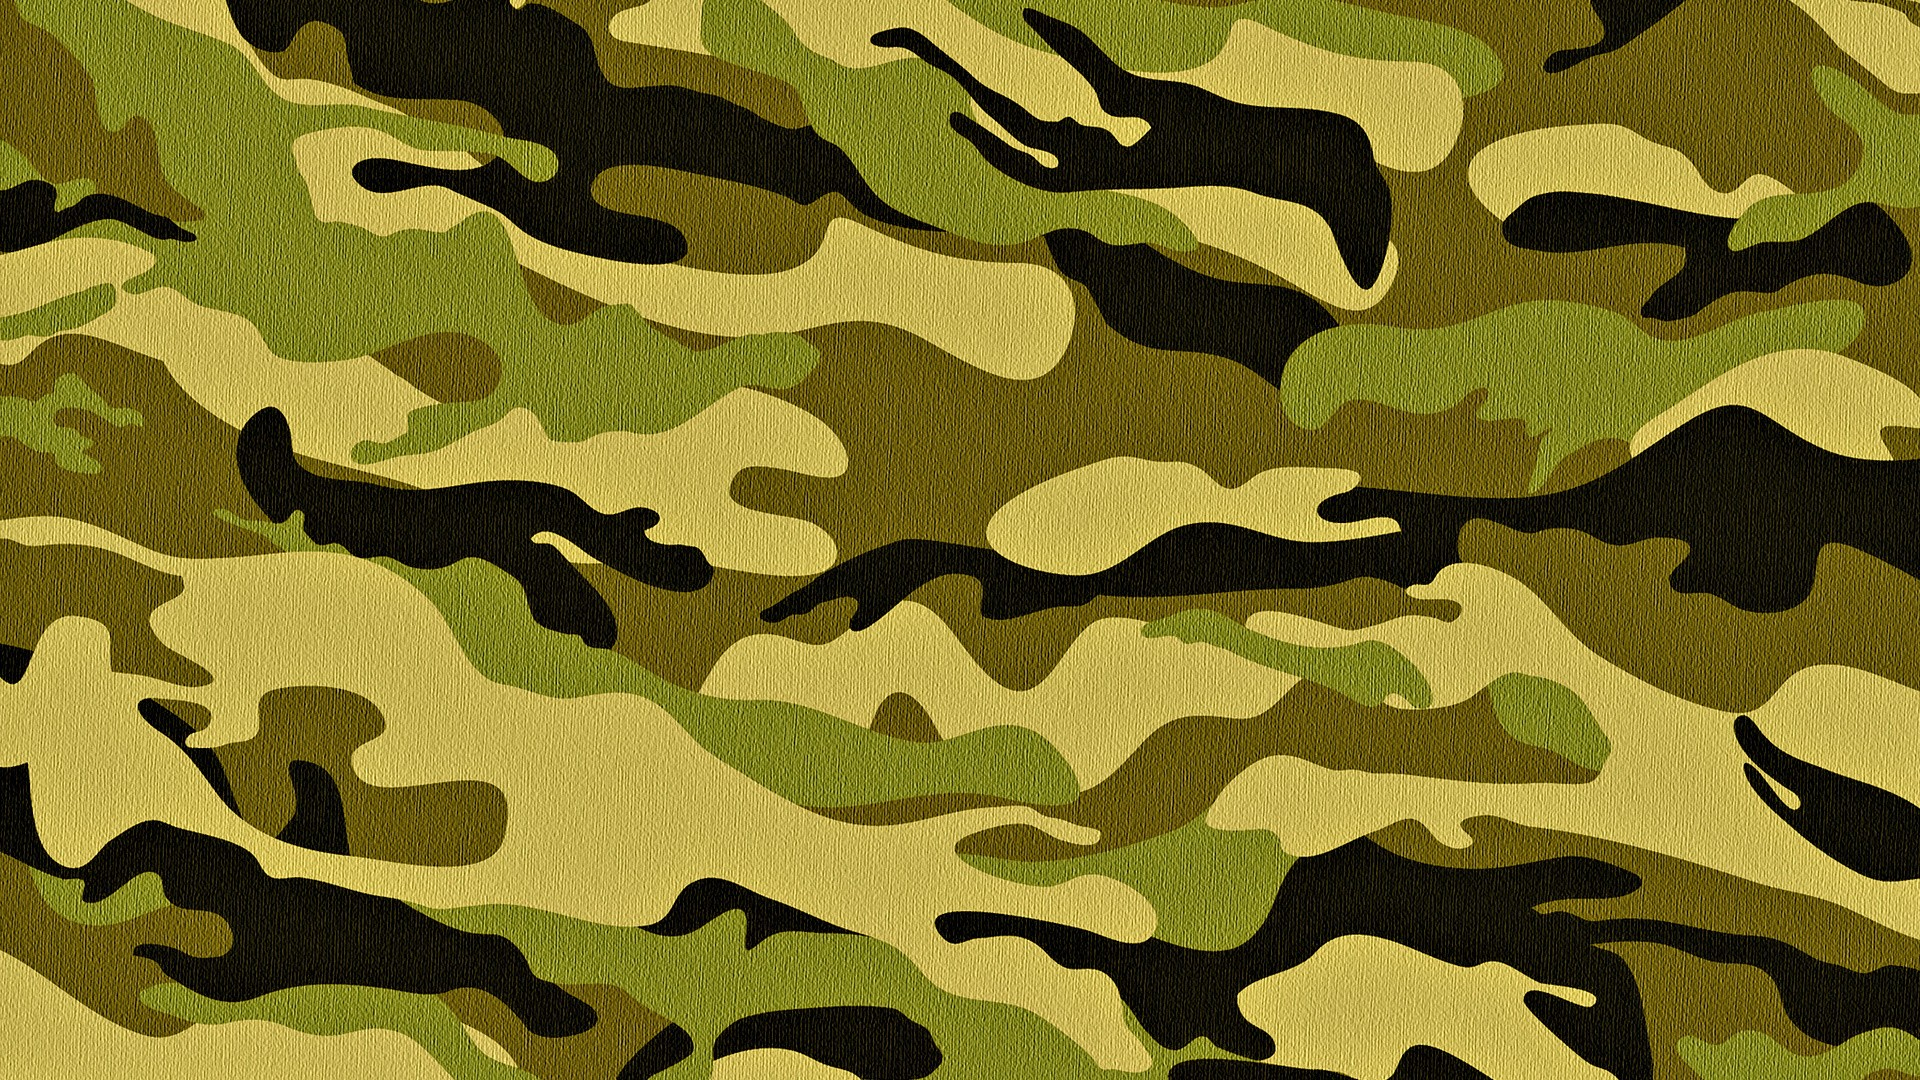 download army camouflage wallpaper which is under the army wallpapers 1920x1080